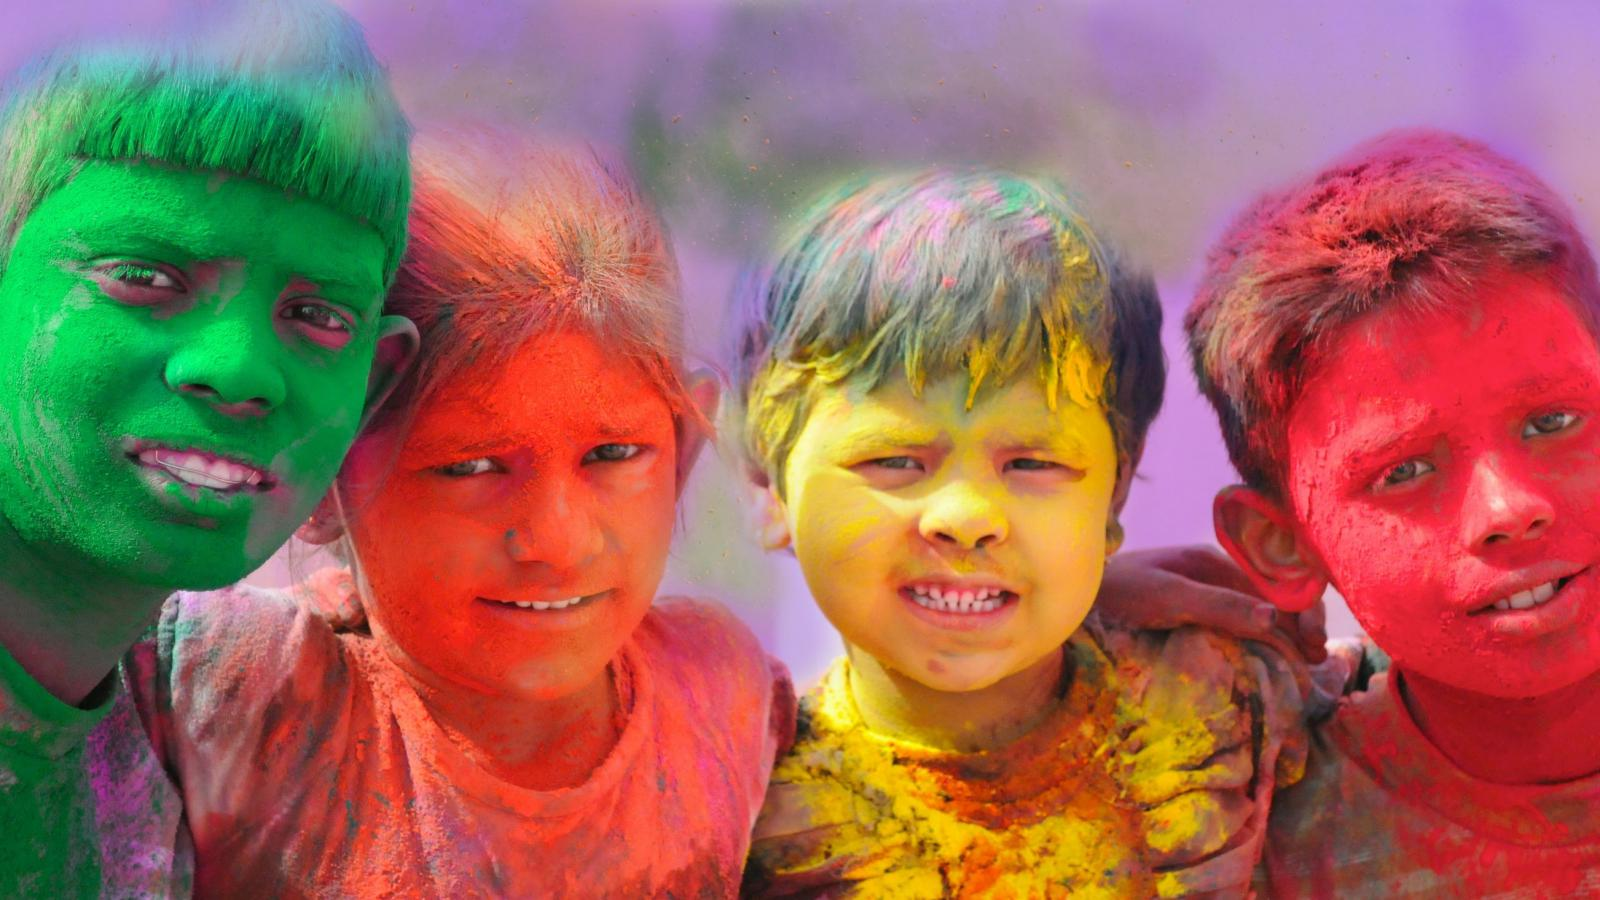 happy holi festival best wishes hd images and essay happy holi festival 2018 best wishes 19 hd images and essay for students